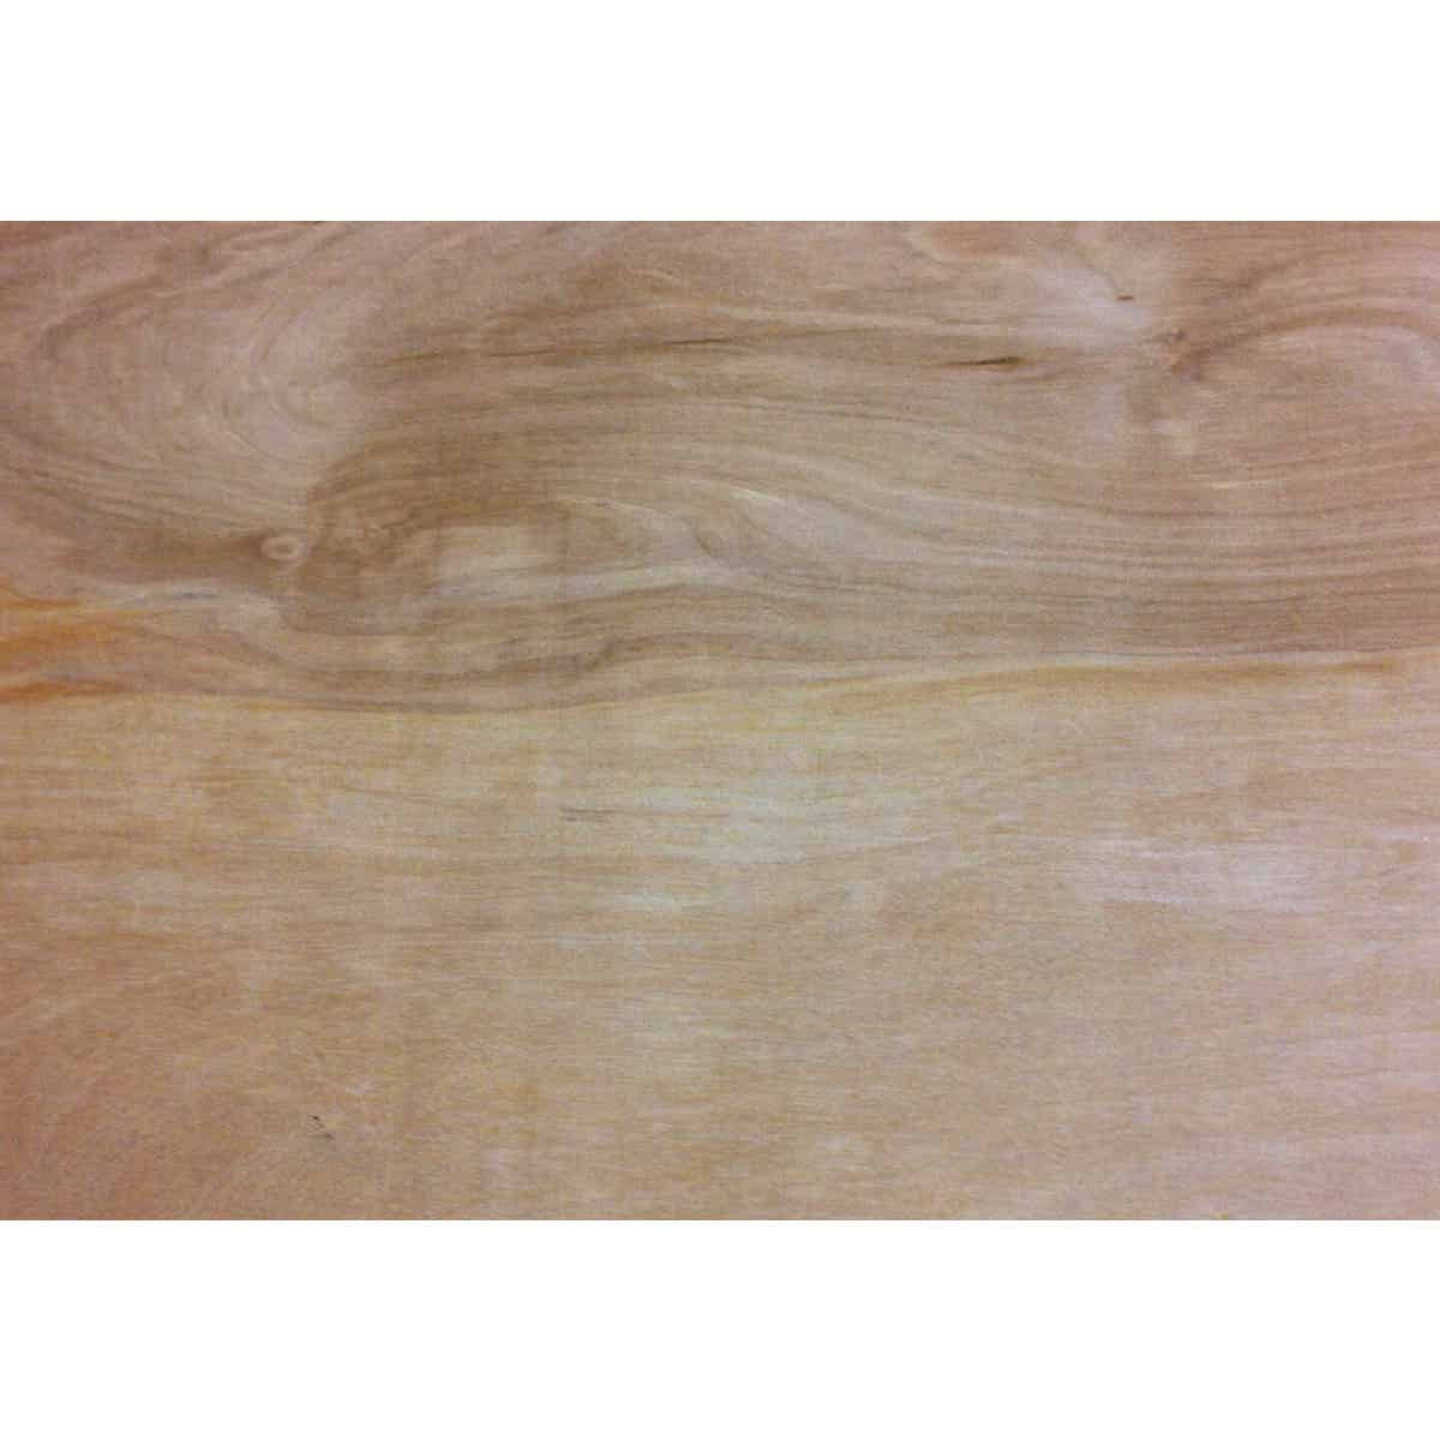 Universal Forest Products 1/2 In. x 24 In. x 48 In. Birch Plywood Panel Image 1